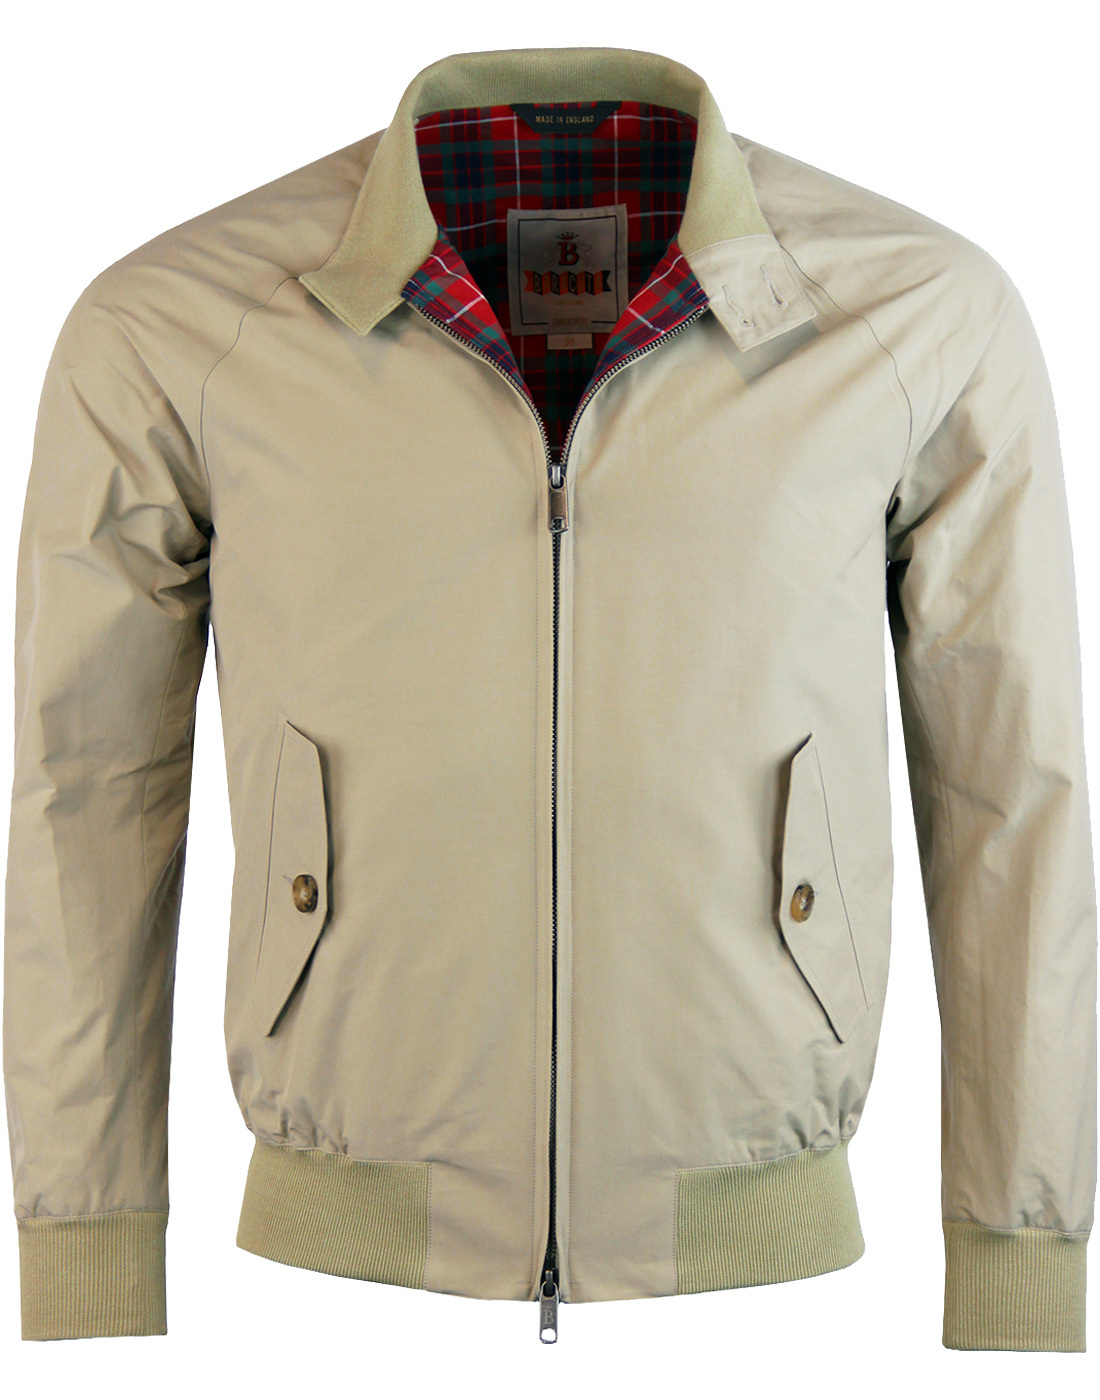 BARACUTA G9 Mod 60s Harrington Jacket - Natural